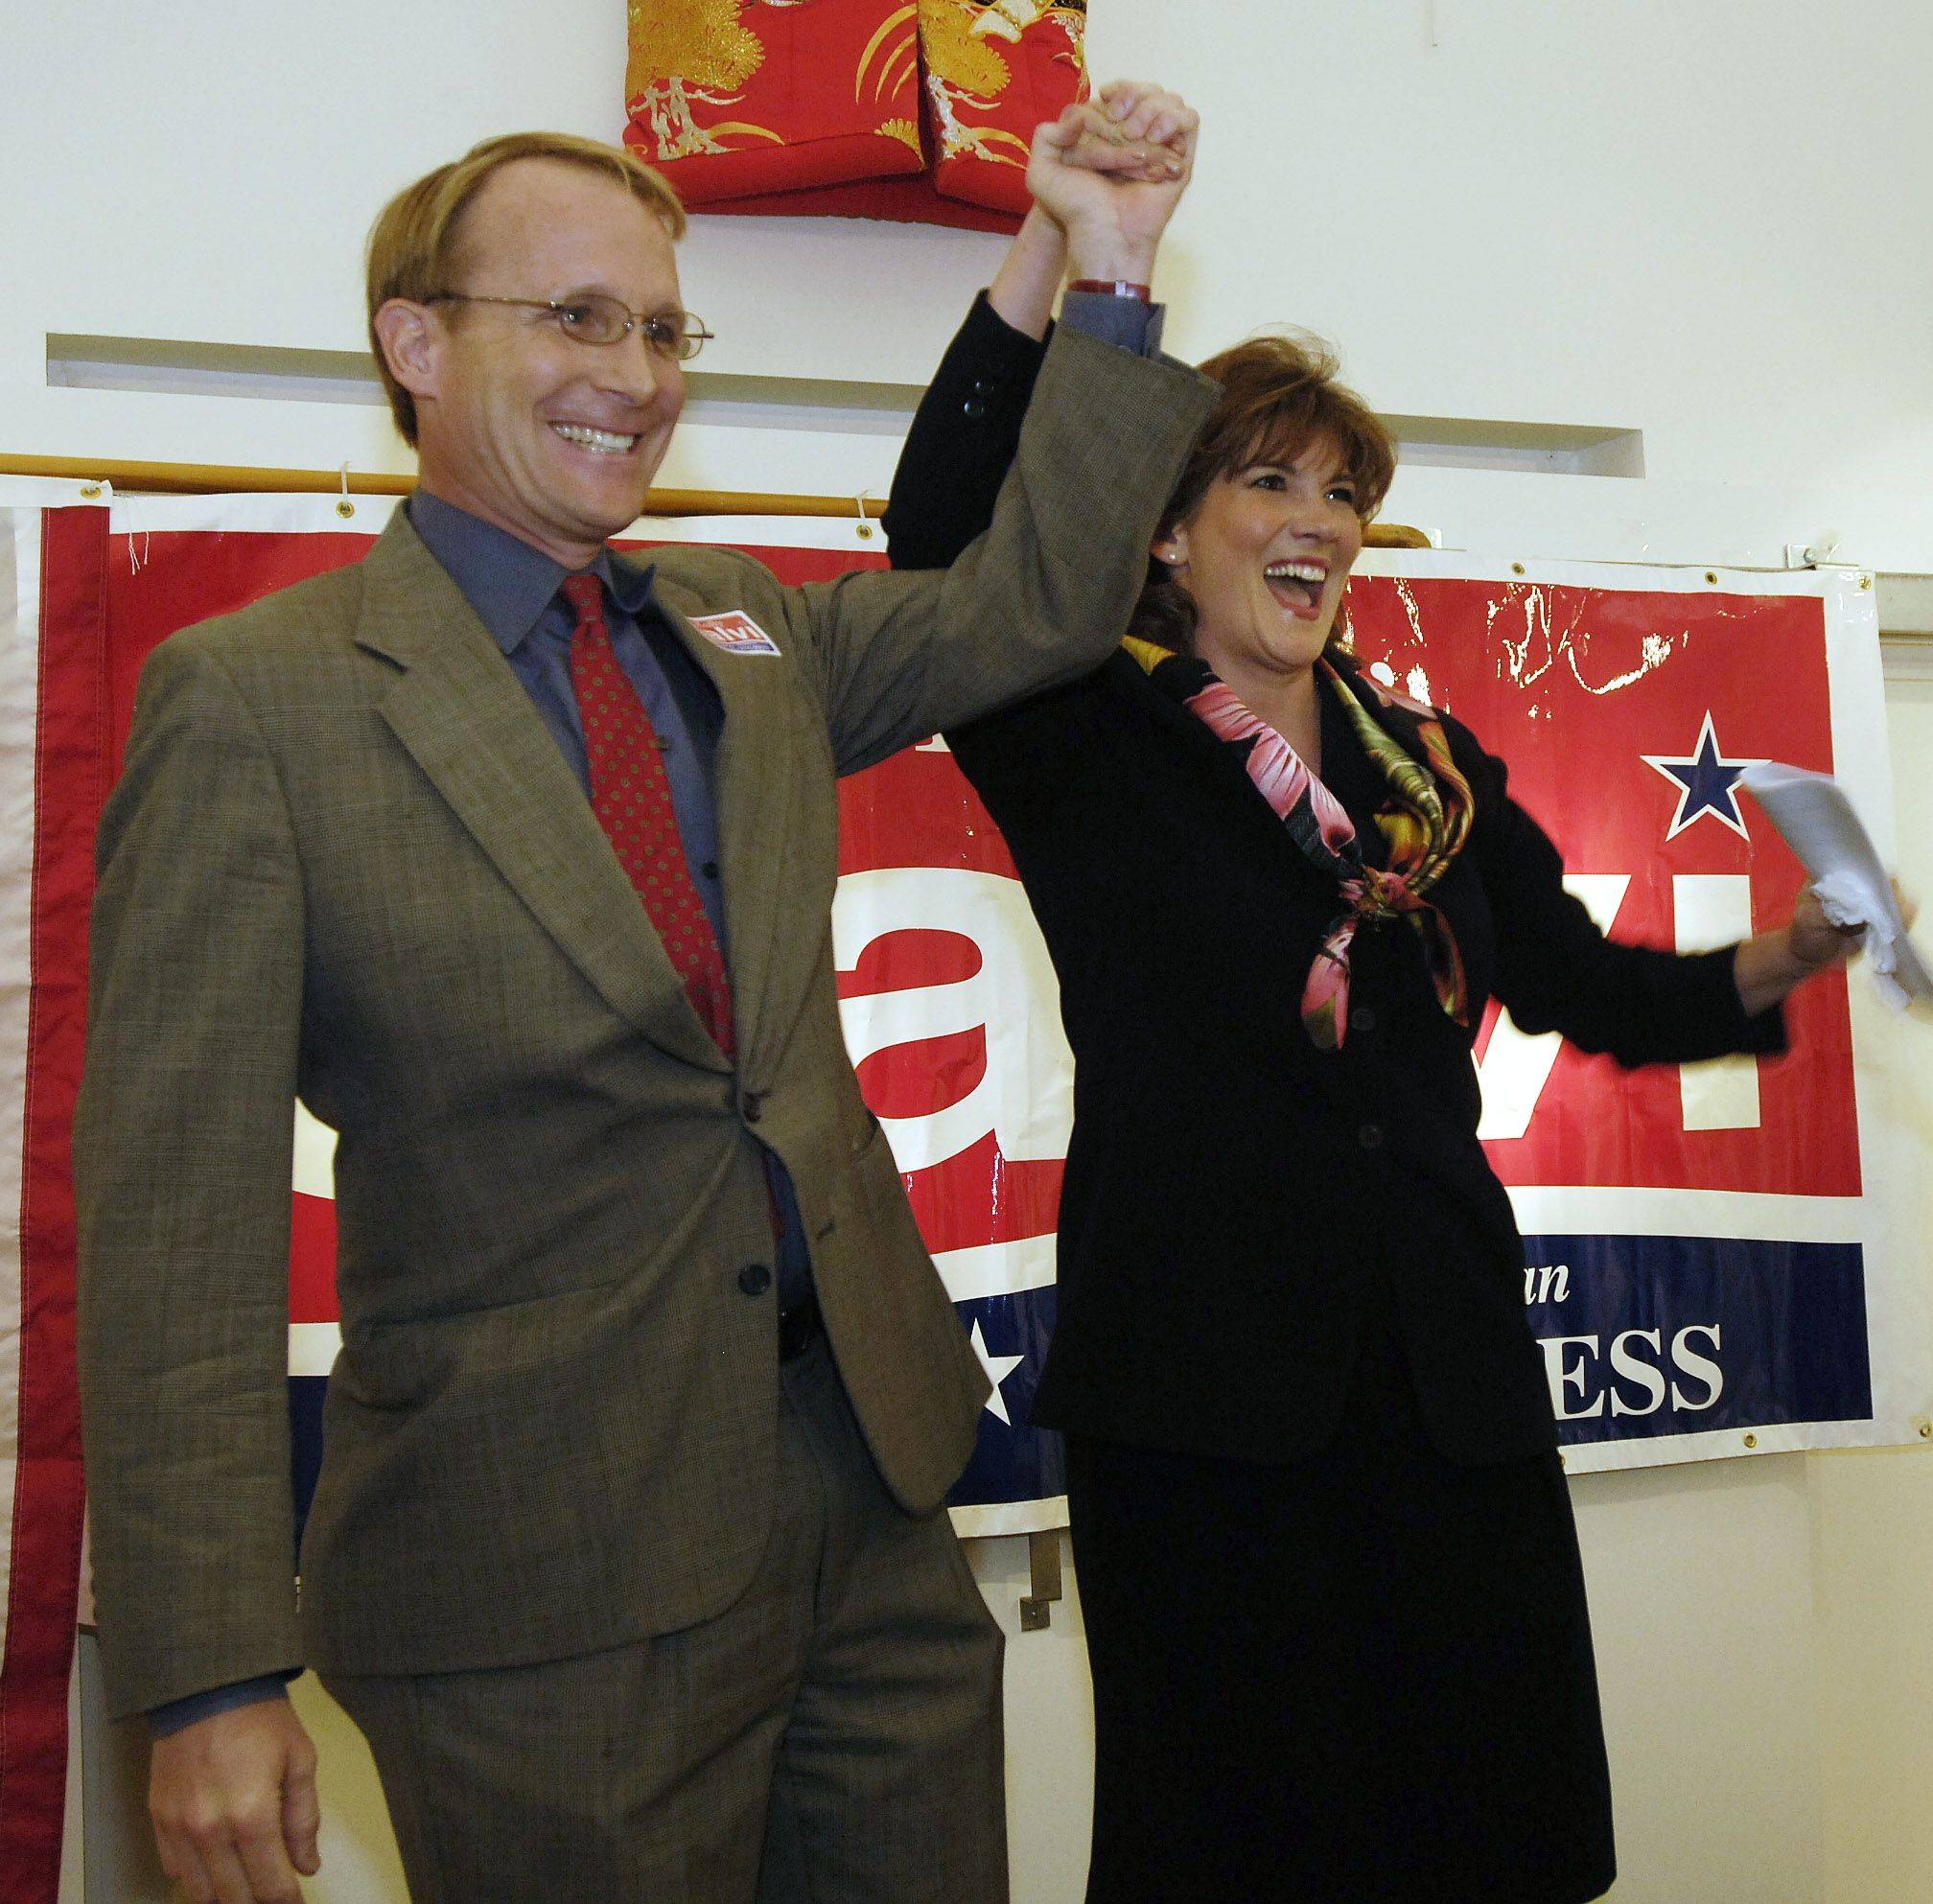 In 2005, Kathy Salvi announces her Republican candidacy for the 8th Congressional District with her husband, former state Rep. Al Salvi, by her side.